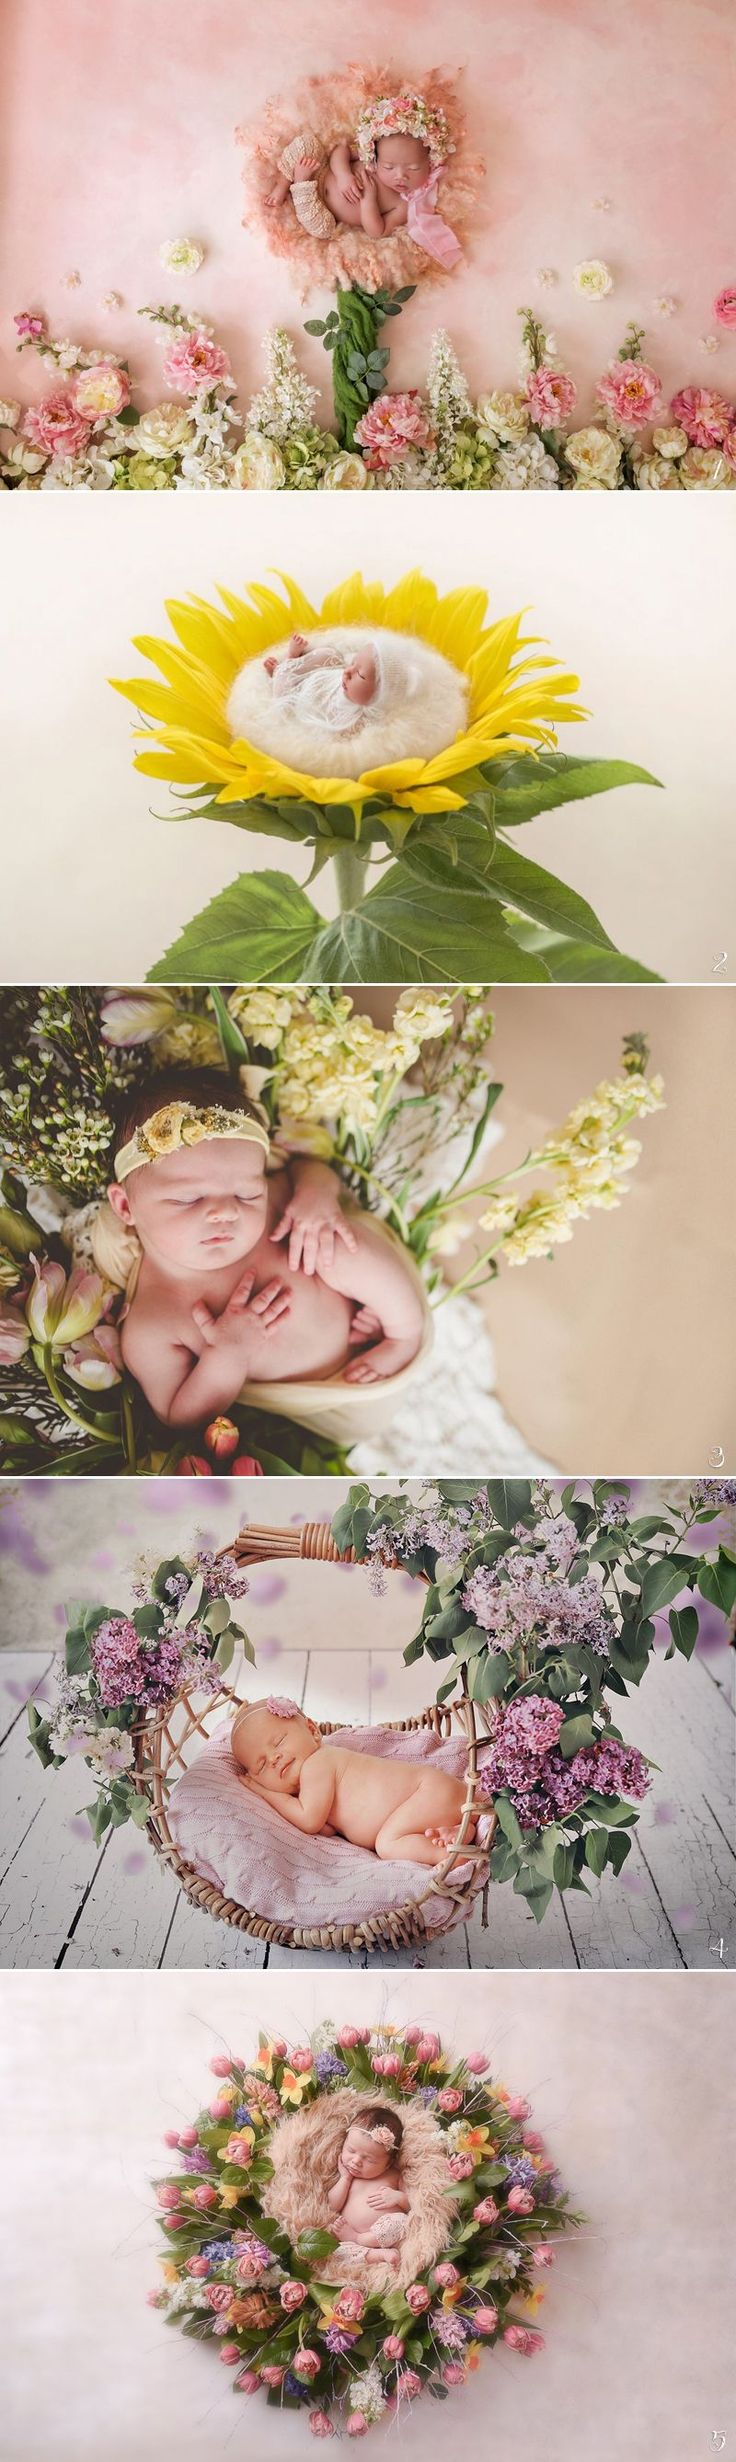 Newborn photography has a special place in our hearts, especially when artists come up with out-of-the-box ideas that are a little more creative than the standard shoot! Combining imagination with artistry and photography, these amazing work we are about to share are sure to captivate your hearts. Get inspired and create your own masterpiece! …